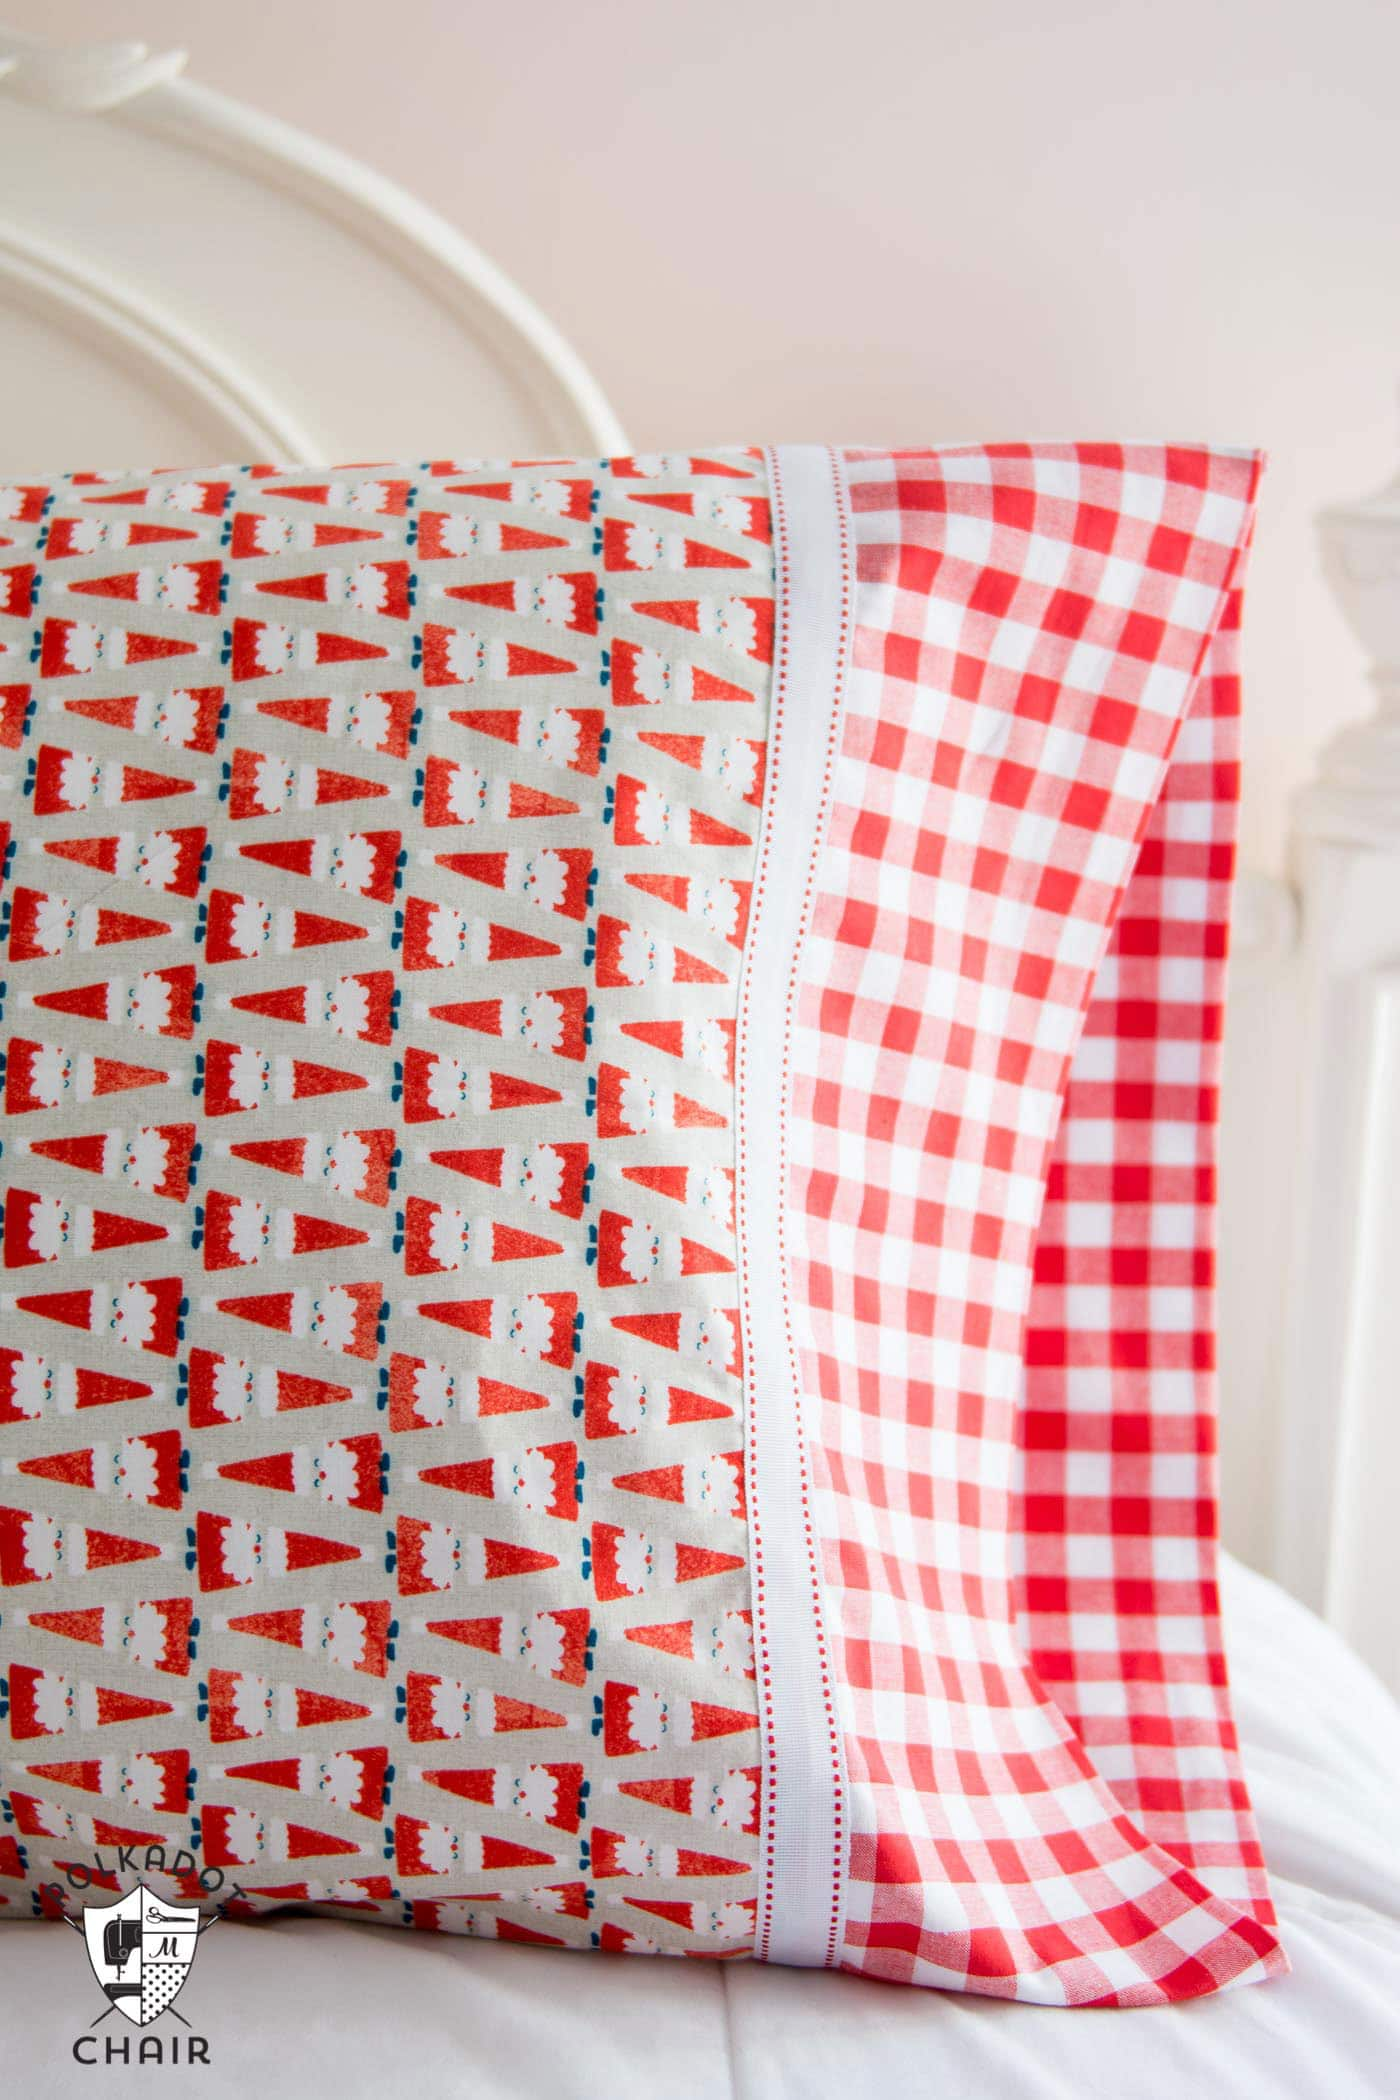 Pillowcase on bed, Christmas fabric